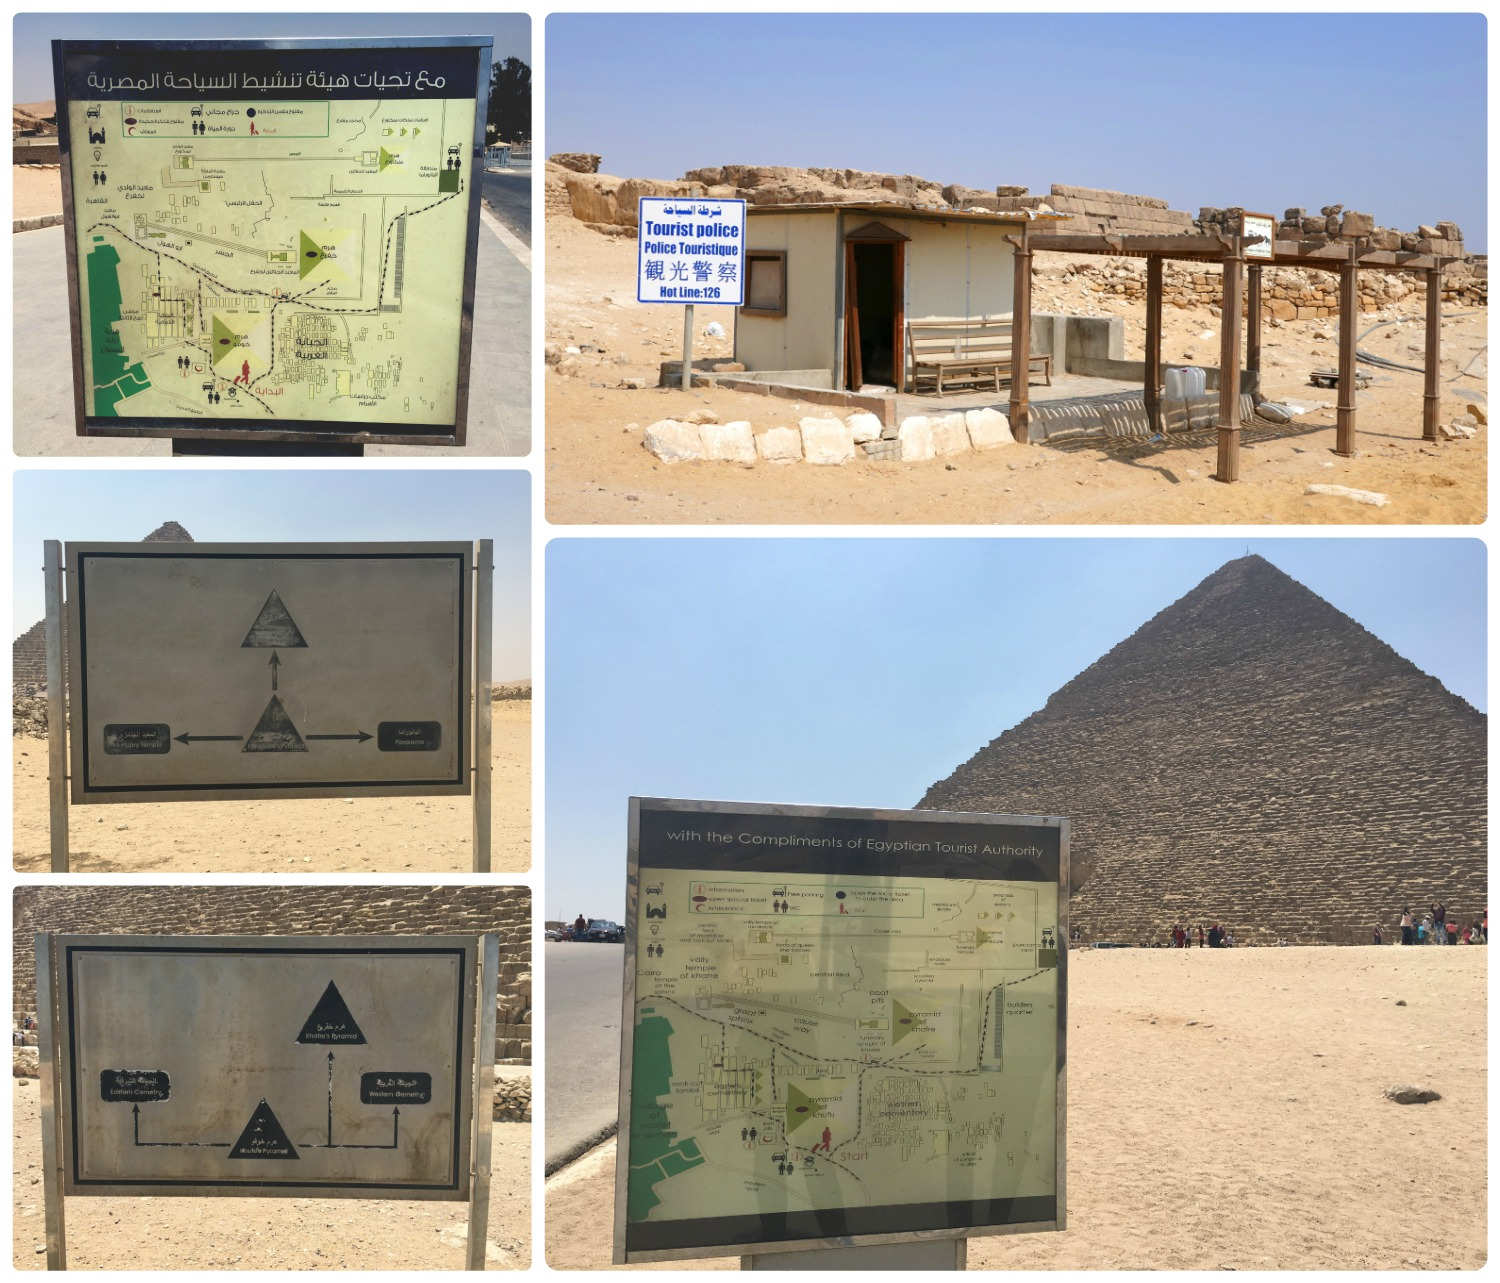 Clockwise (from the top): A map at the front of the Giza Pyramid Complex written in Arabic (opposite side is in English), the tourist police station on the side of the Great Pyramid and before the second pyramid (Pyramid of Khafre), the map at the front of the complex in English (opposite side is in Arabic), a map in front of the Great Pyramid of Giza, a map in front of Menkaure's Pyramid.